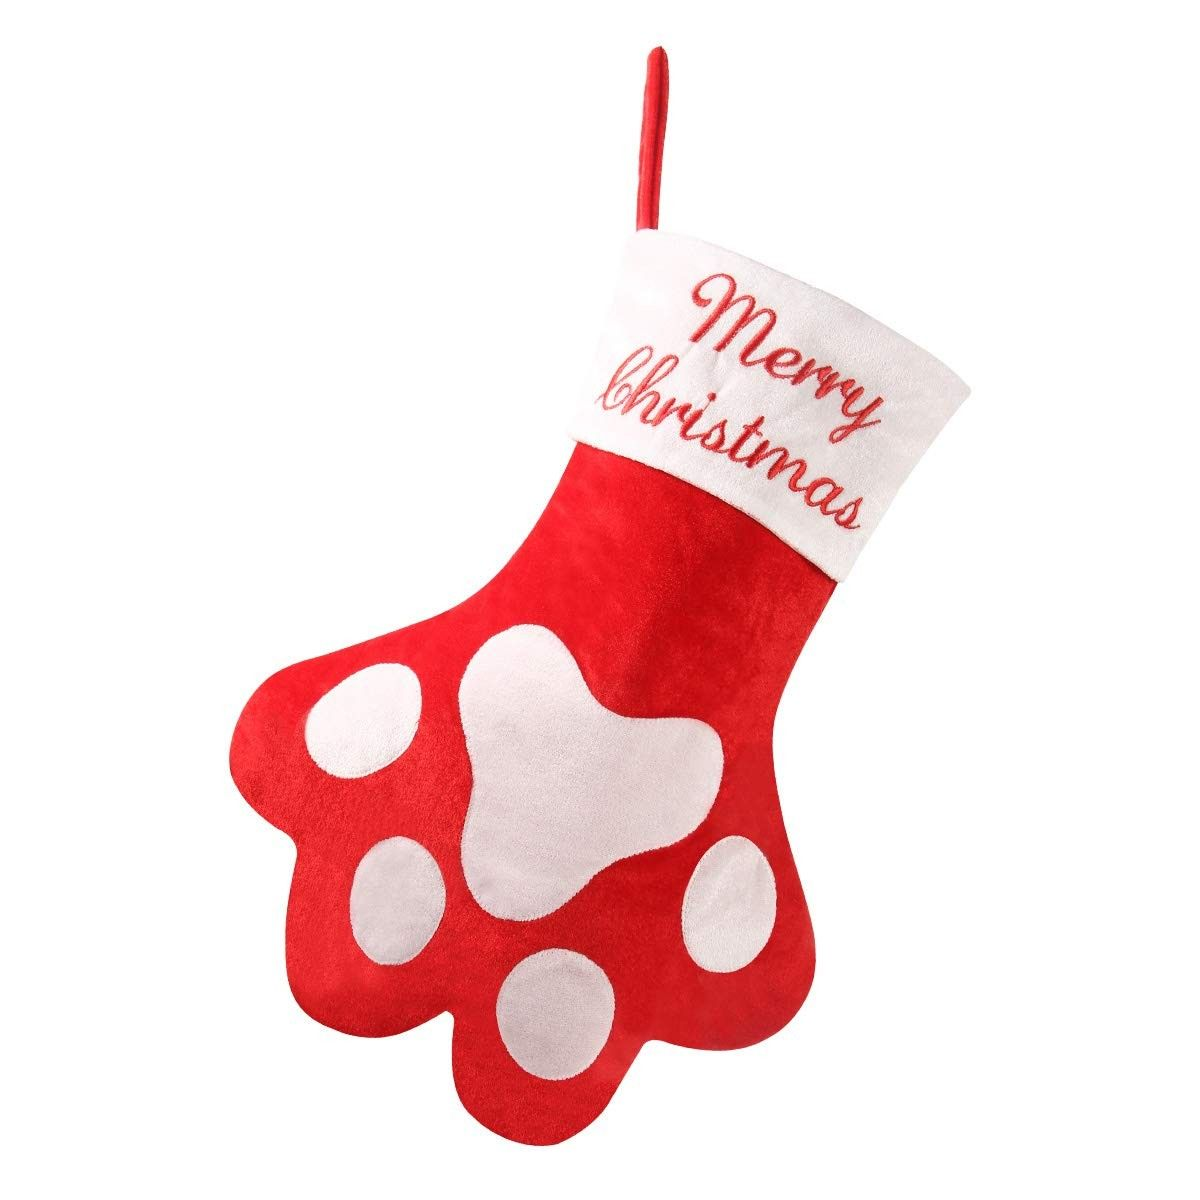 875e05e2046 Red Pet Paw Christmas Stocking - Large Size 18